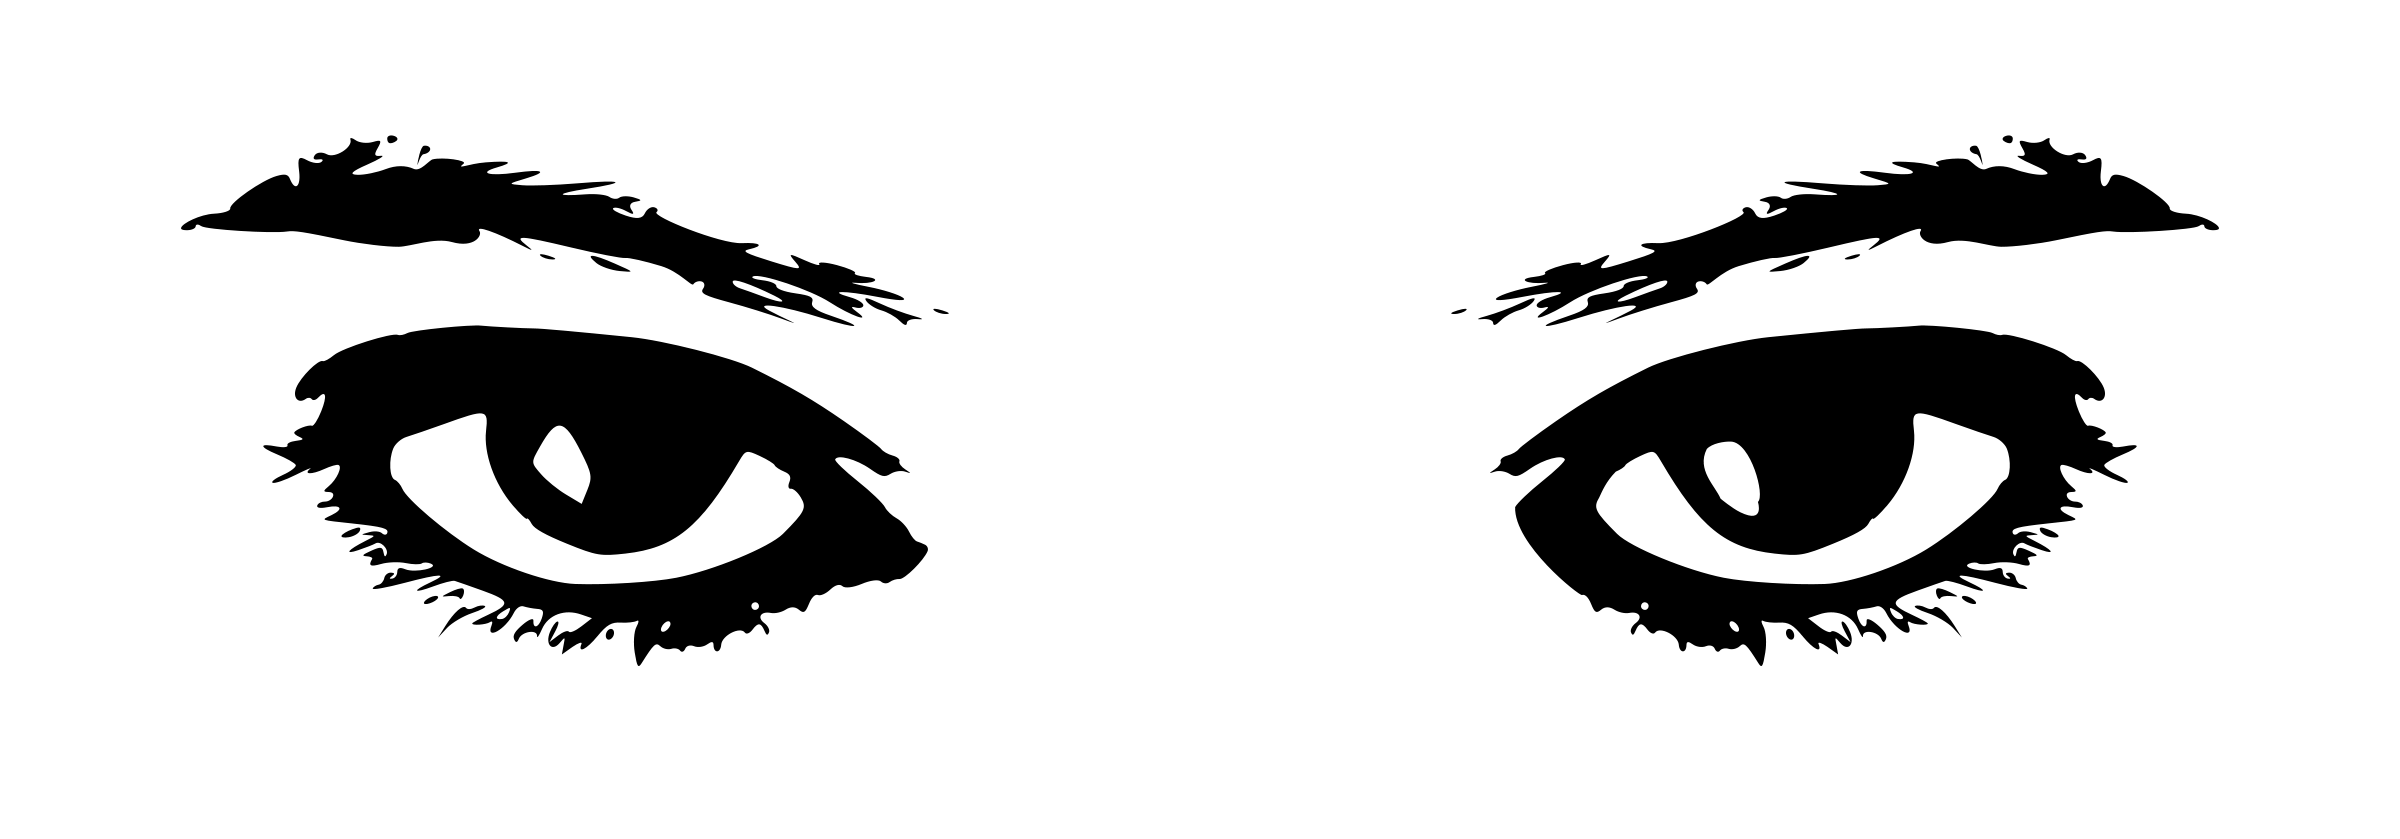 Looking Eyes Clip Art